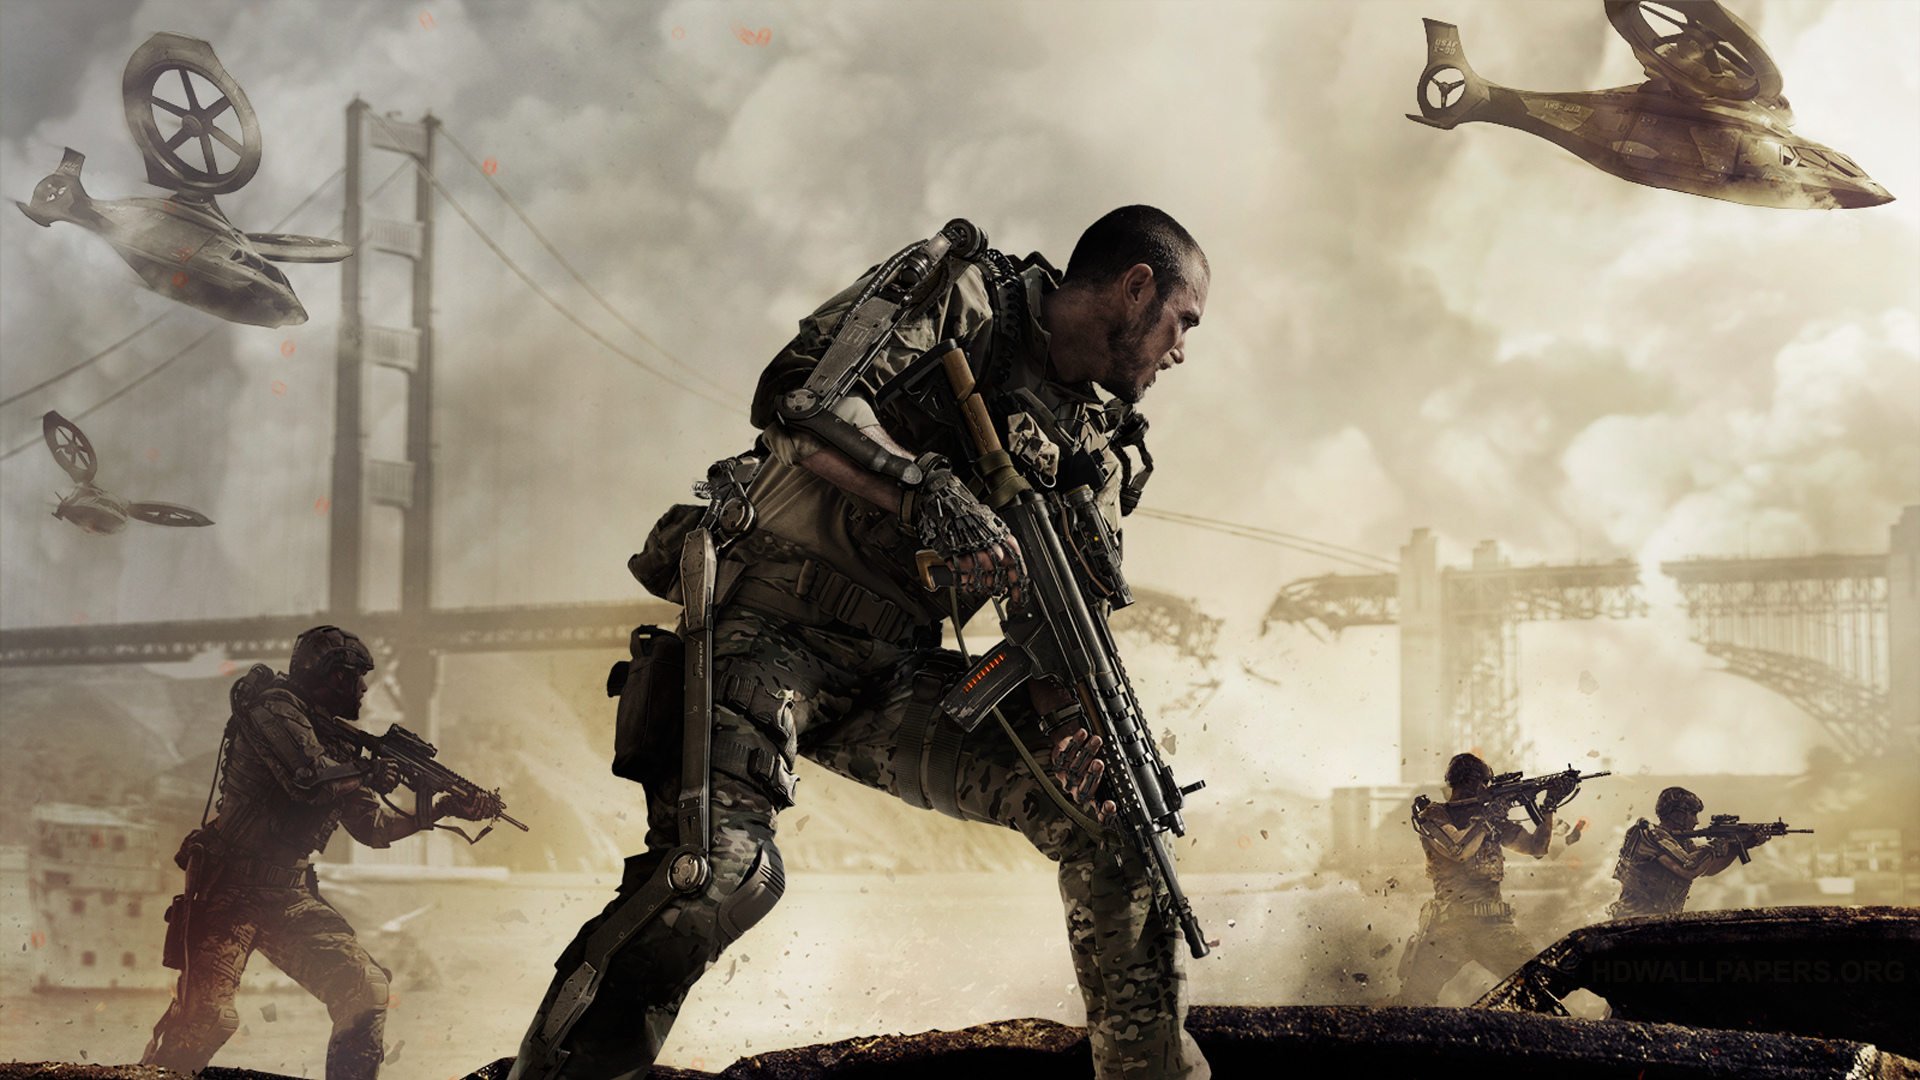 'Call of Duty: Advanced Warfare' and the Problems of the Modern First-Person Shooter